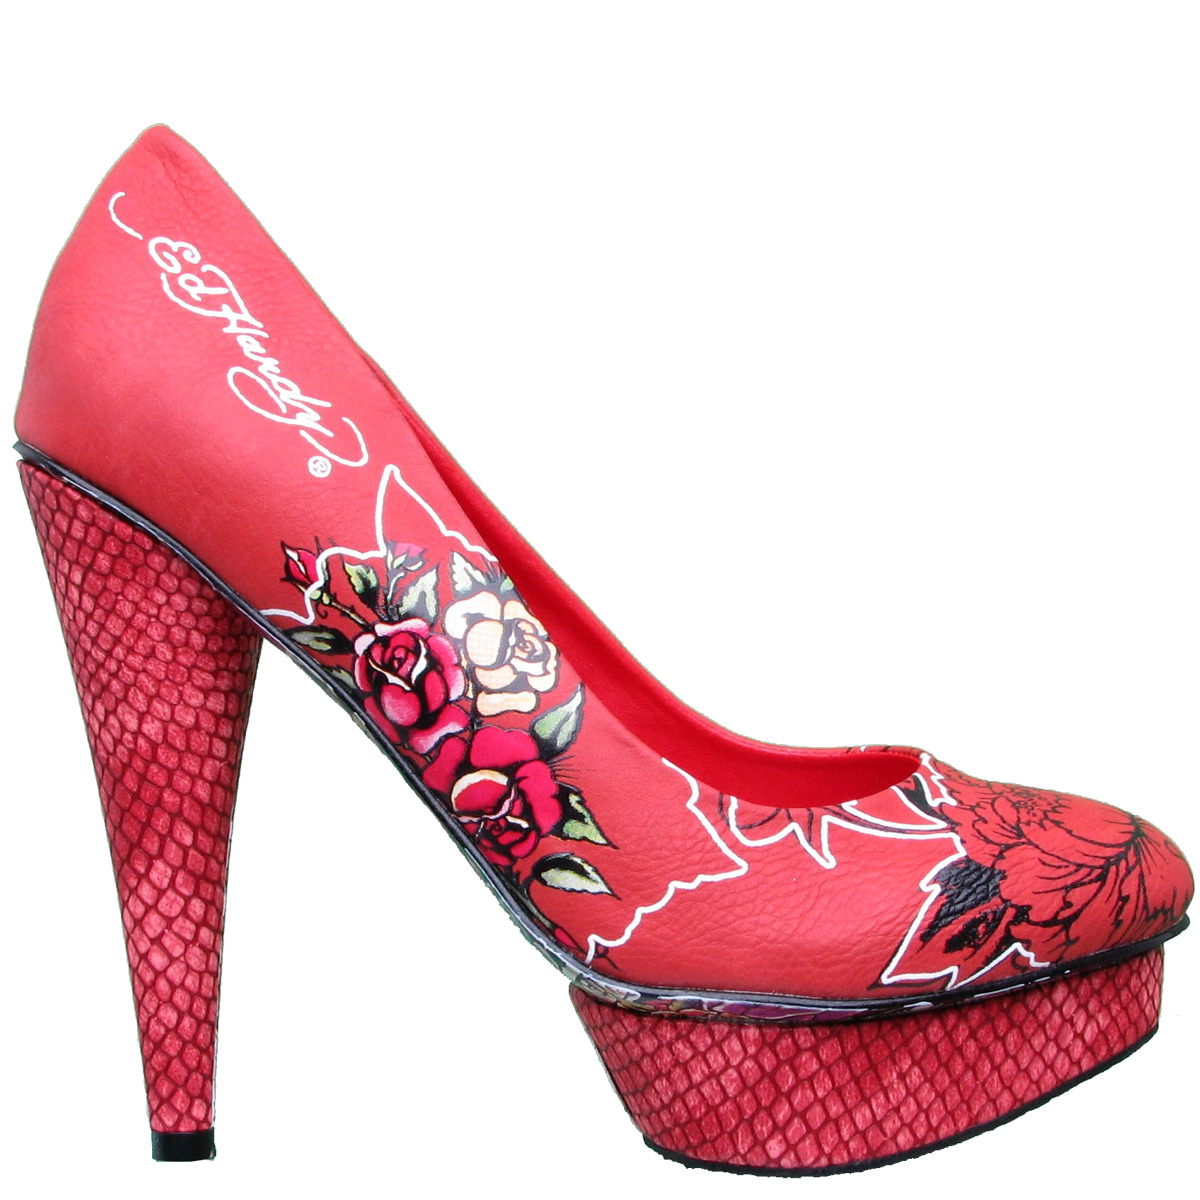 Ed Hardy La Mer Floral Platform Pump Shoe for Women - Red